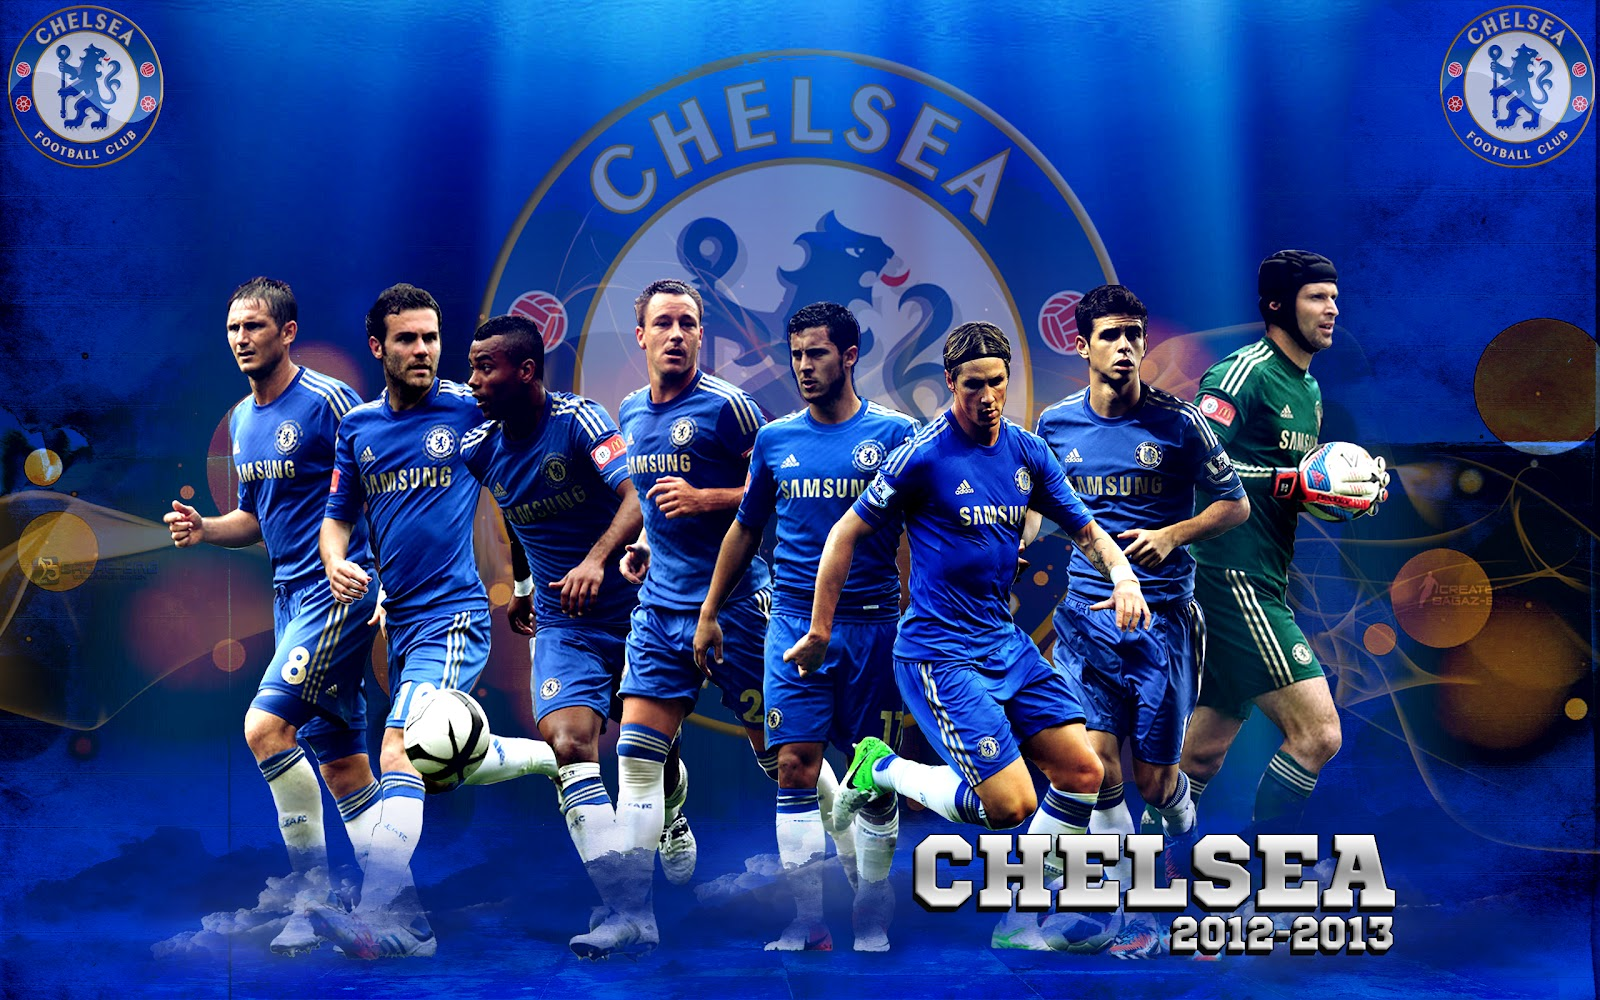 Football: Chelsea FC Soccer HD Wallpapers 2012-2013